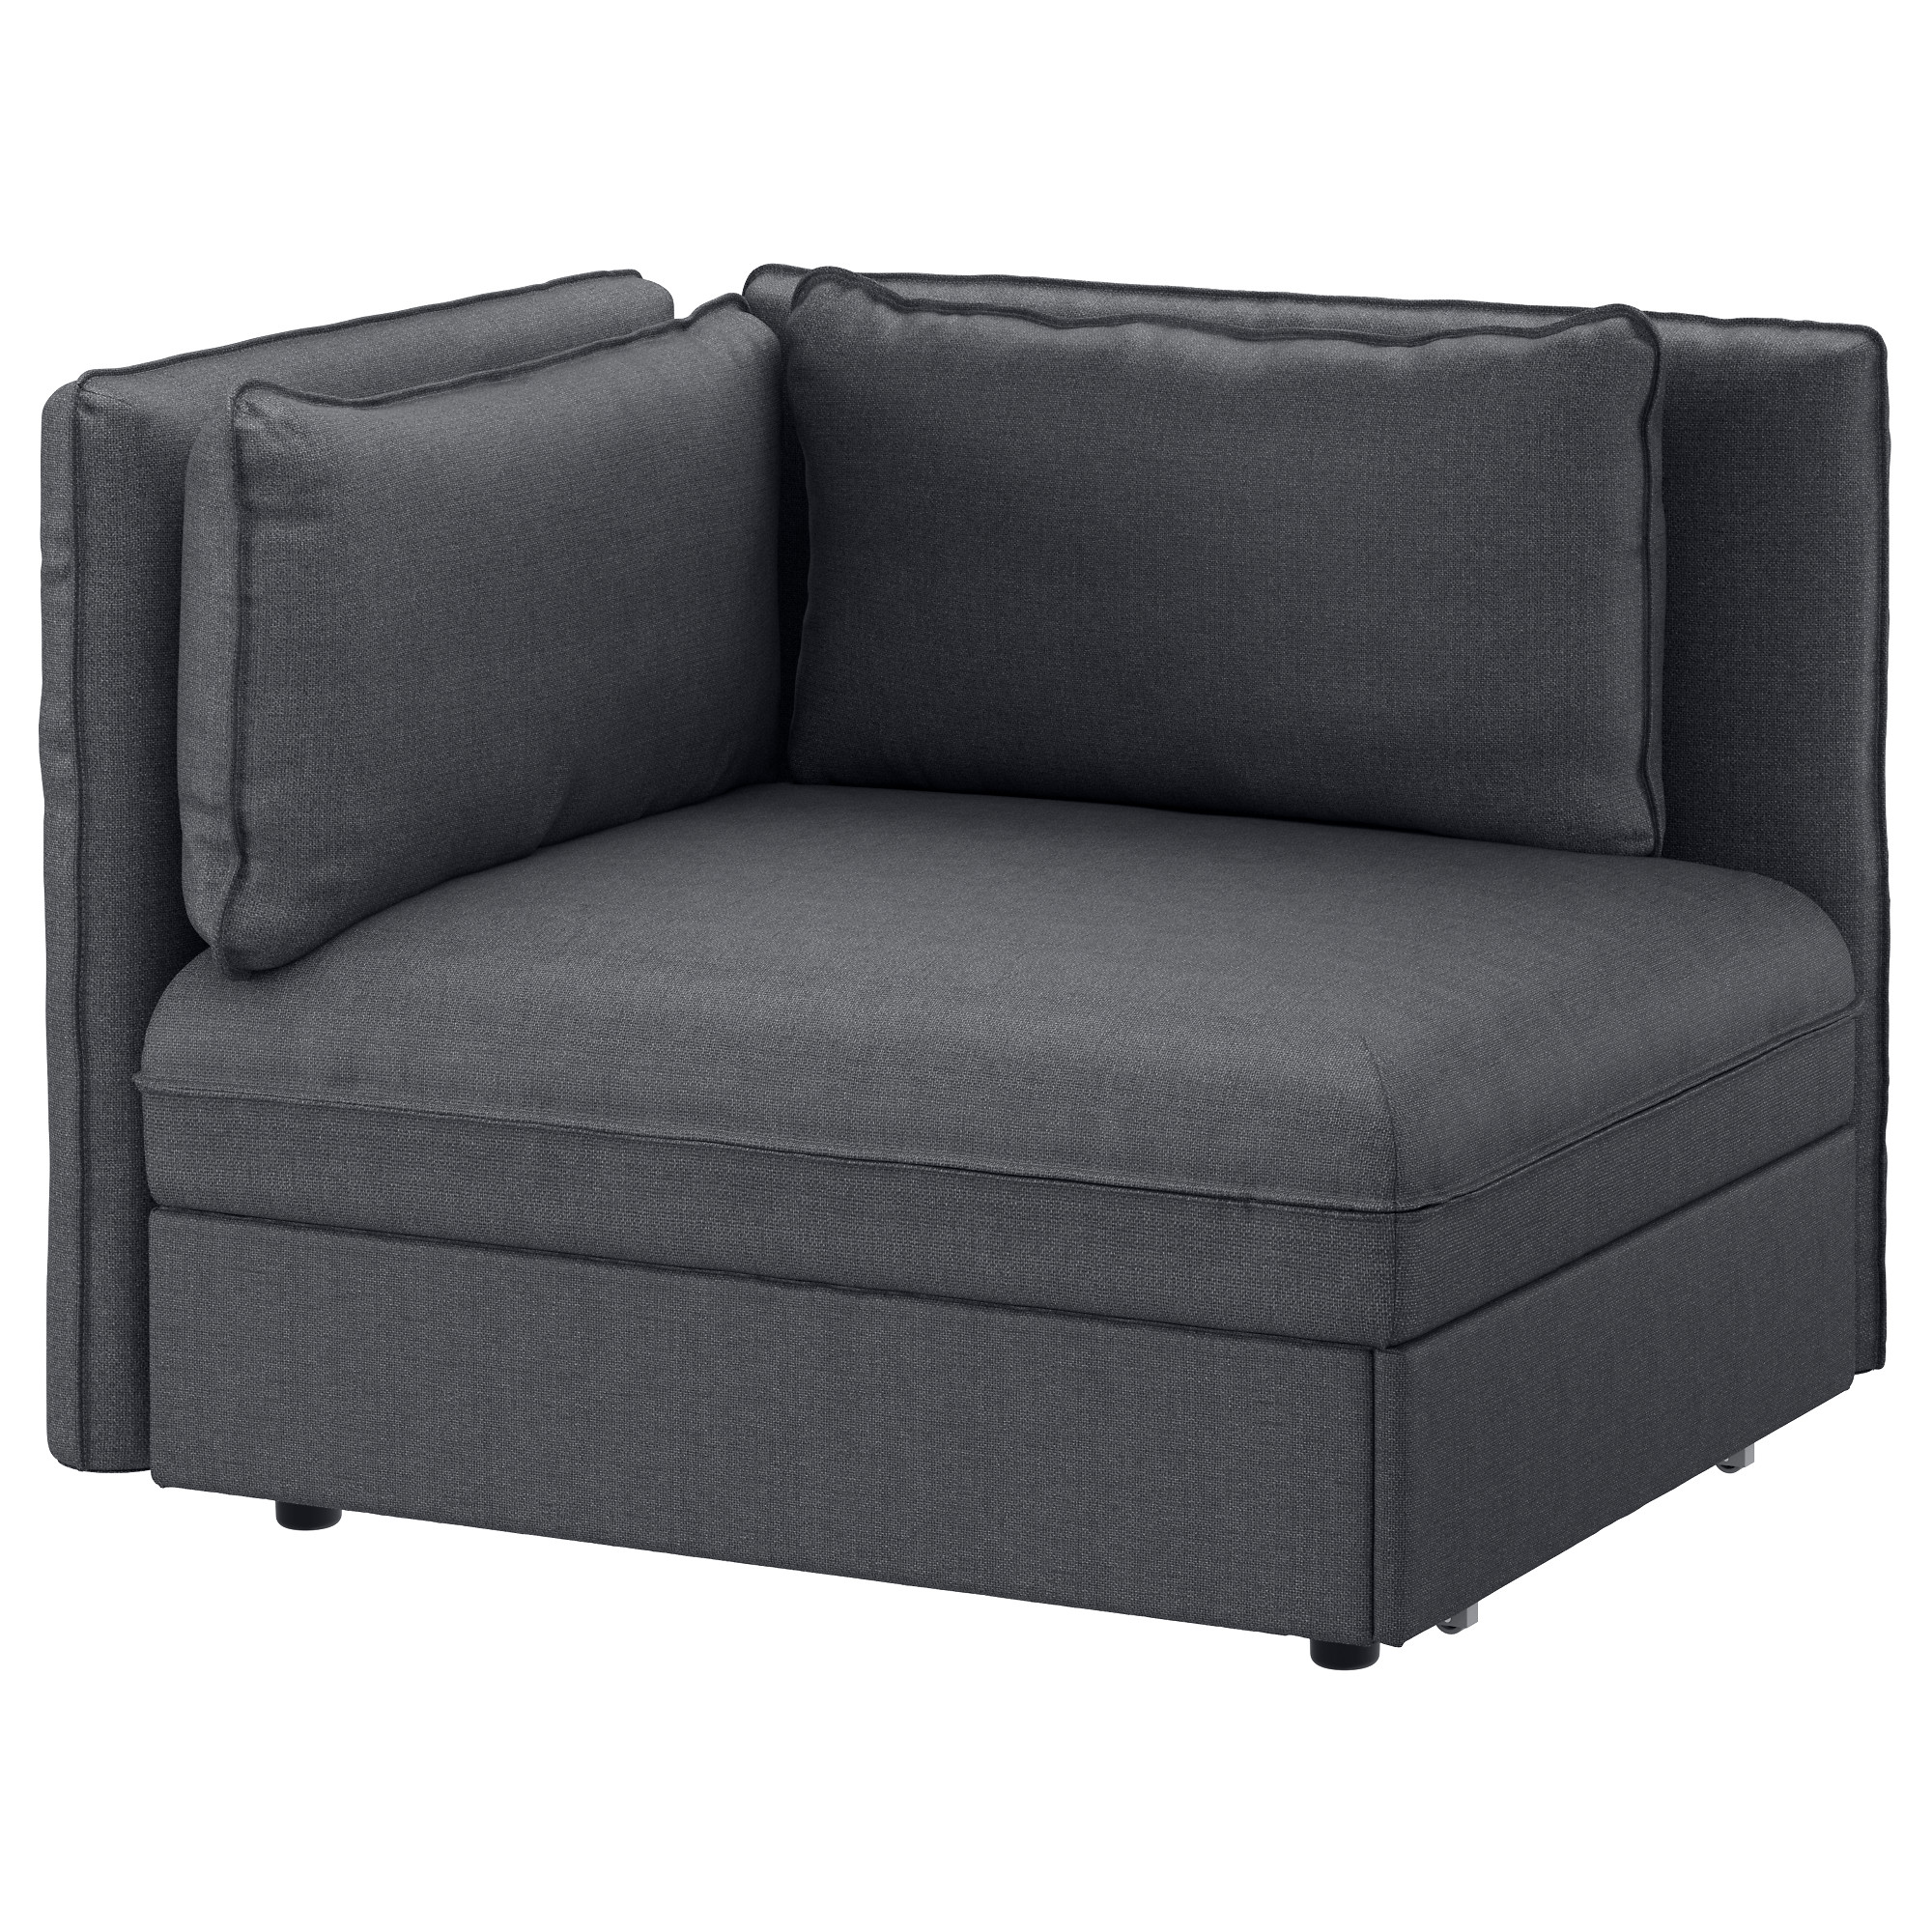 VALLENTUNA sleeper sectional, 1-seat, Hillared dark gray Width: 44 1/